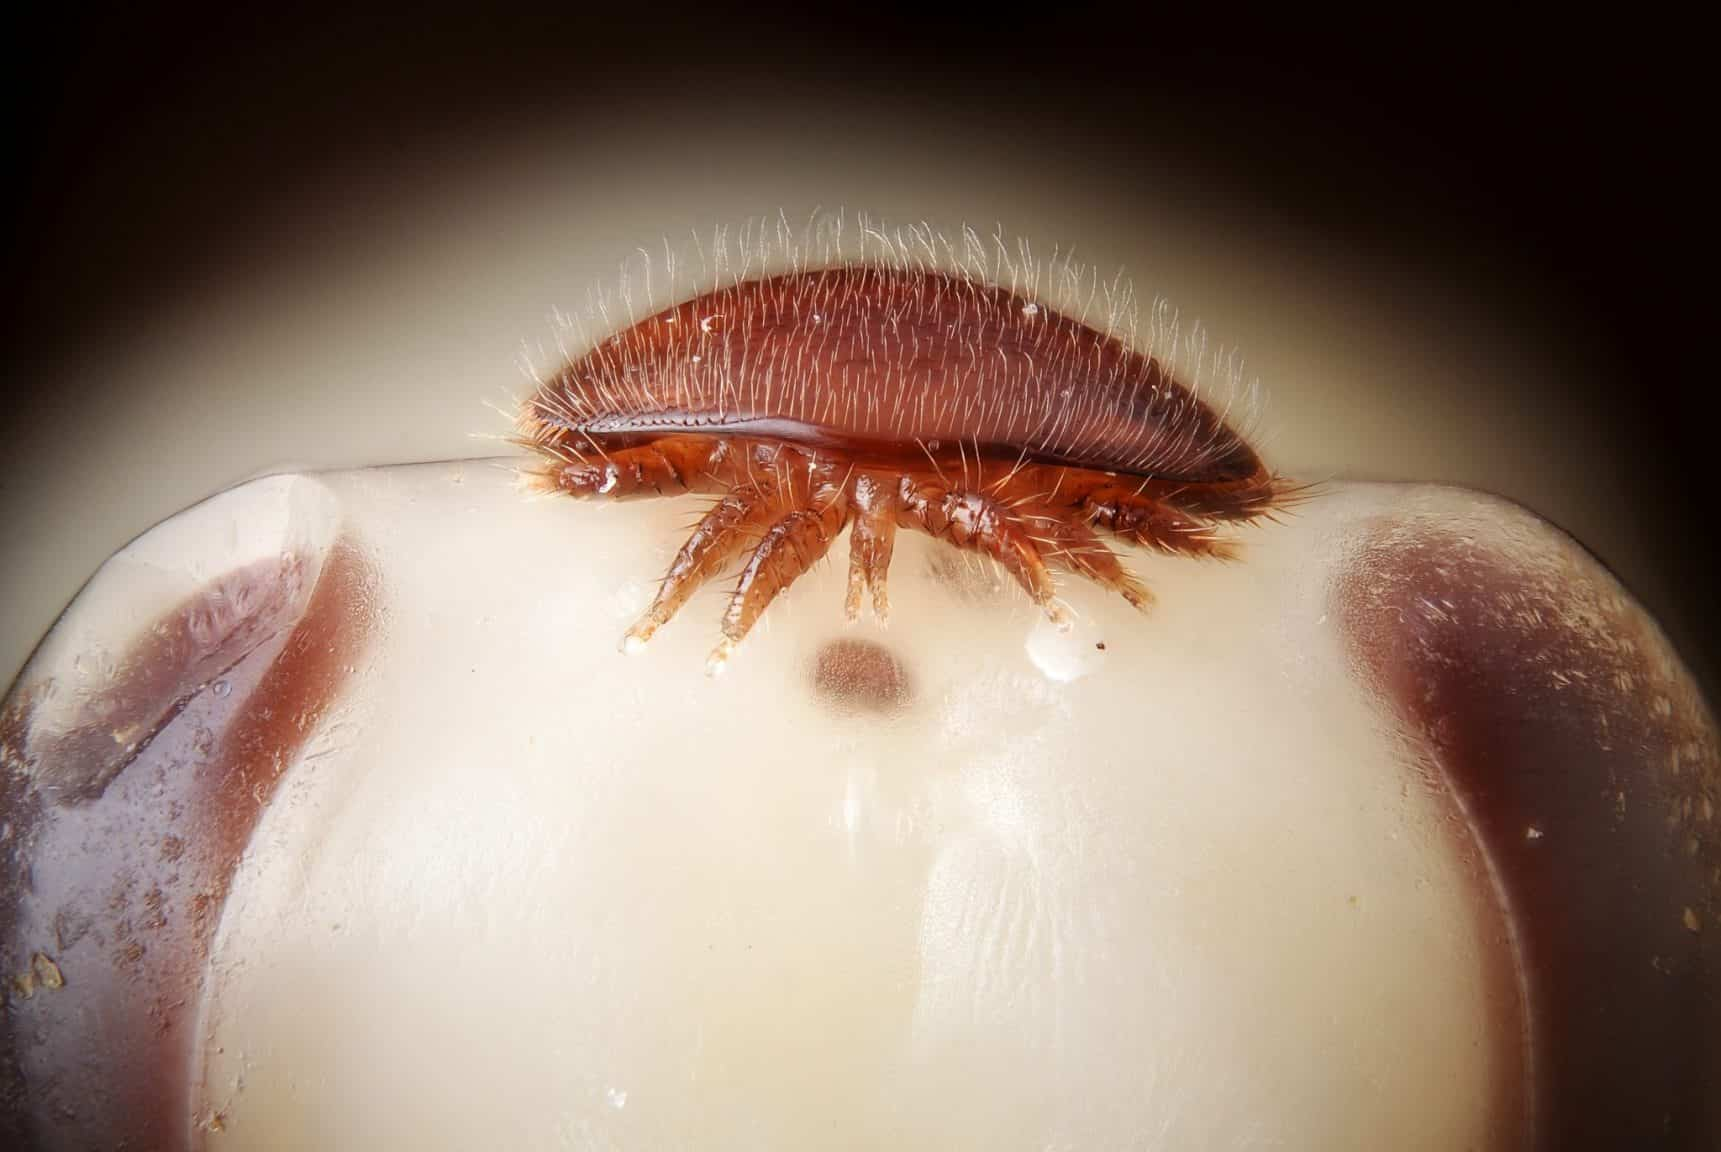 Varroa destructor on head of bee nymph